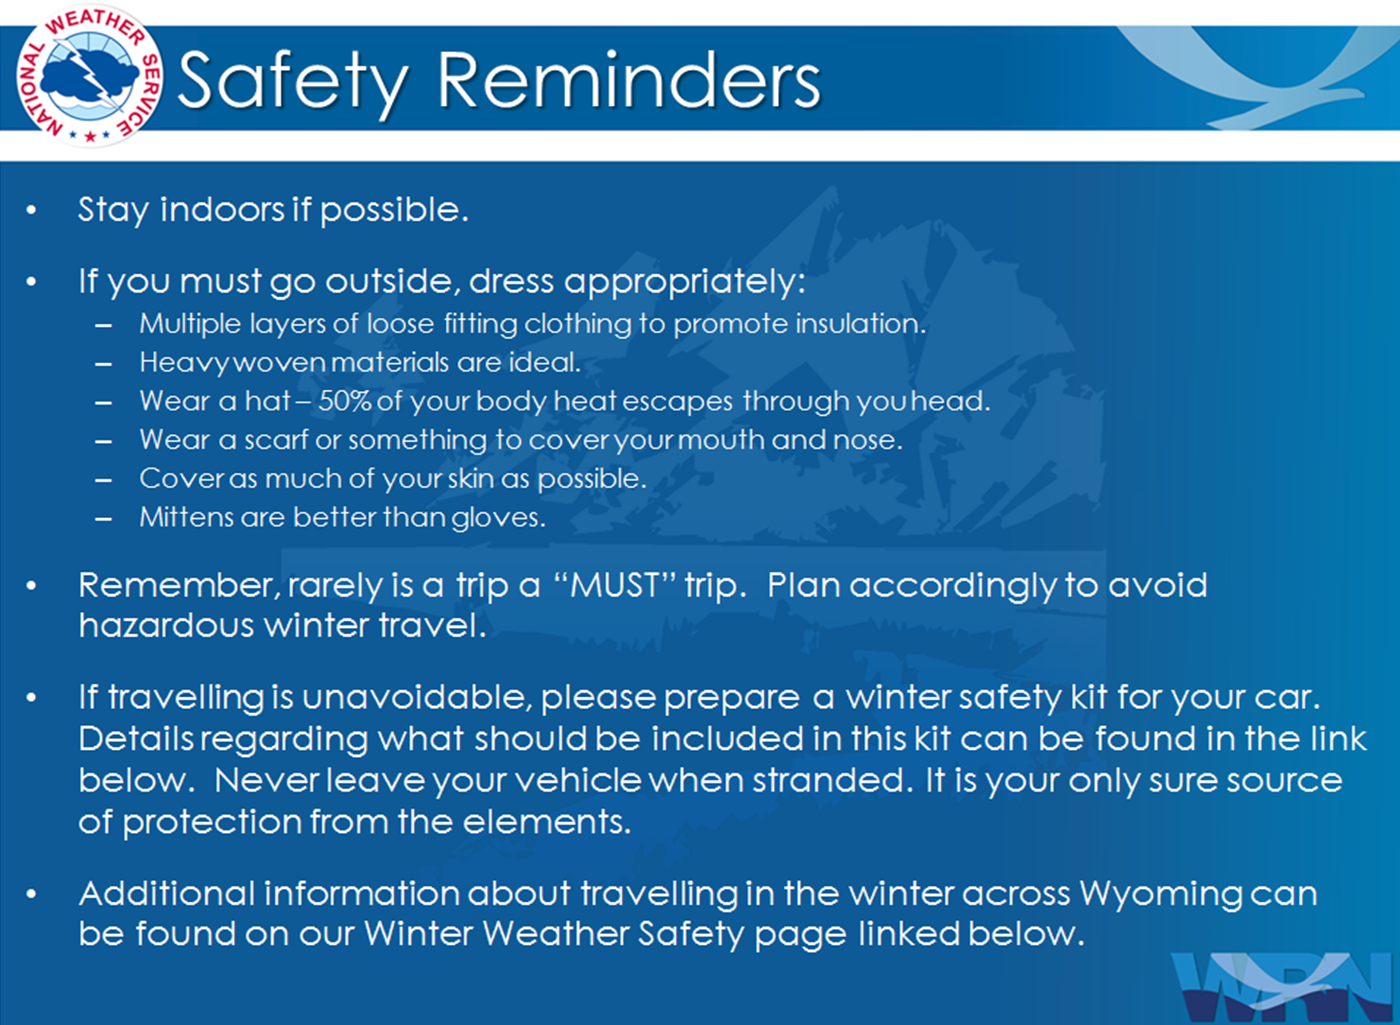 Winter saftey tips